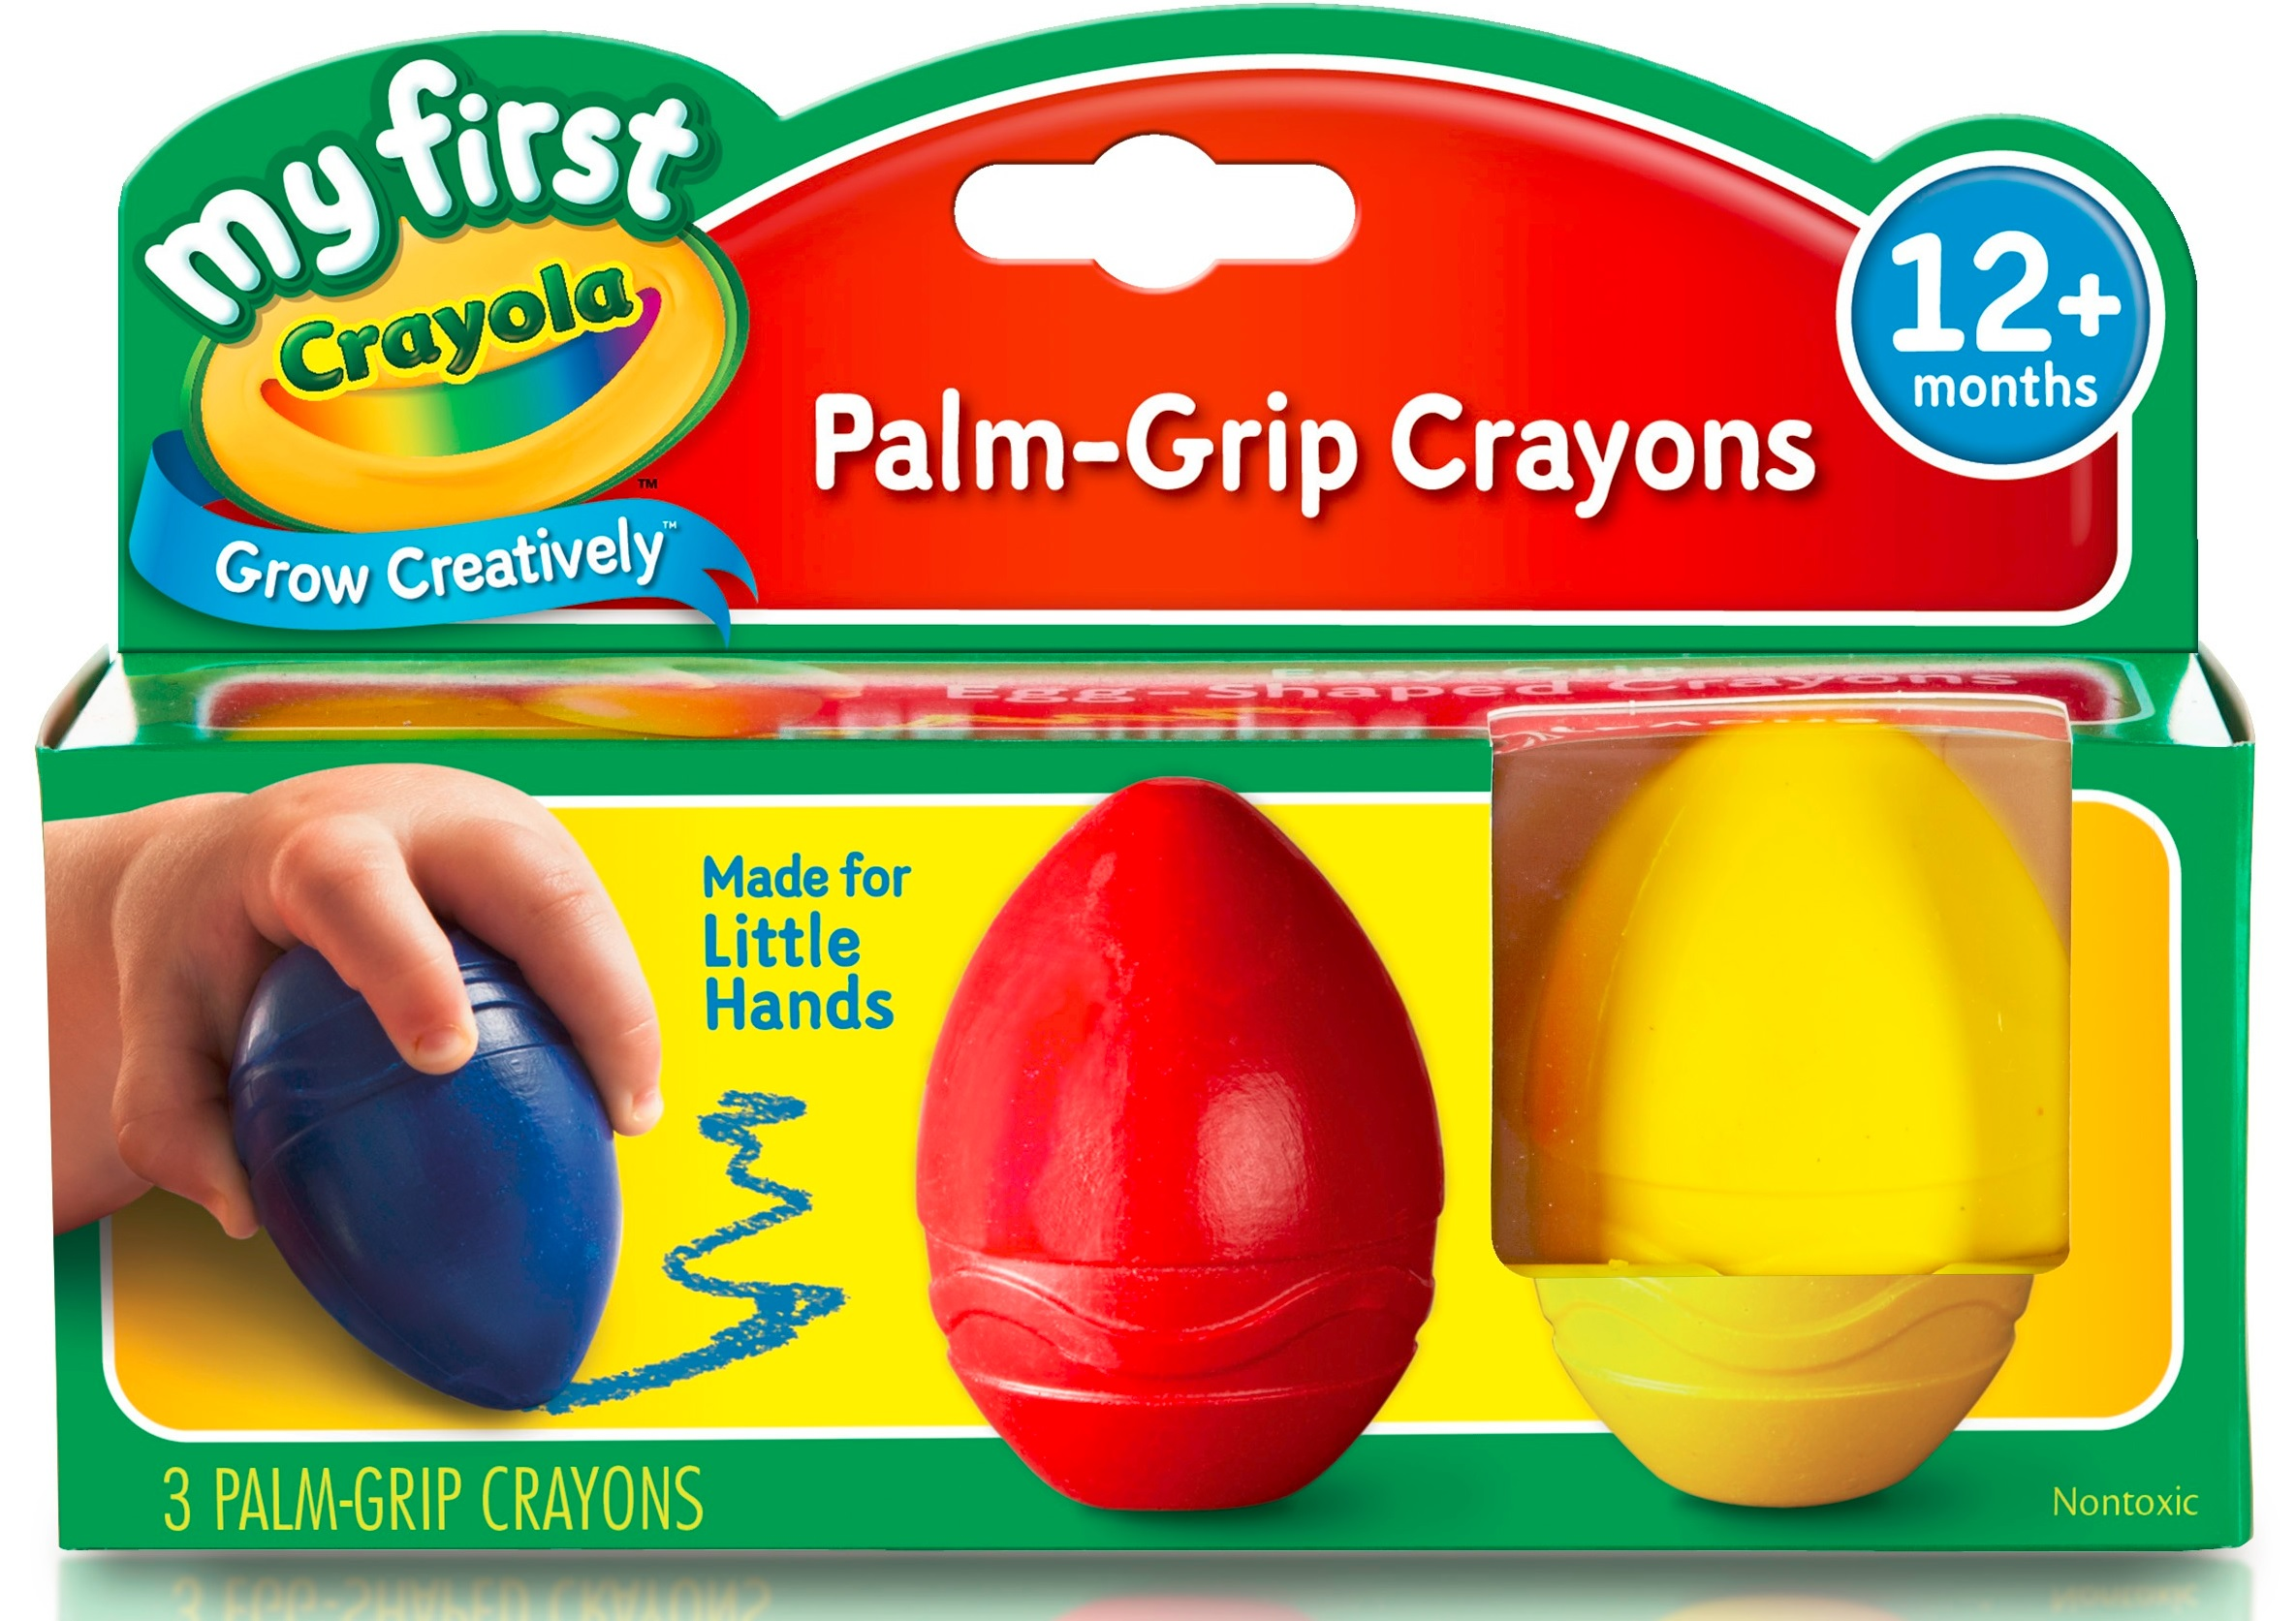 My First Crayola Palm-Grip Crayons red blue yellow 12+months Toddlers Babies